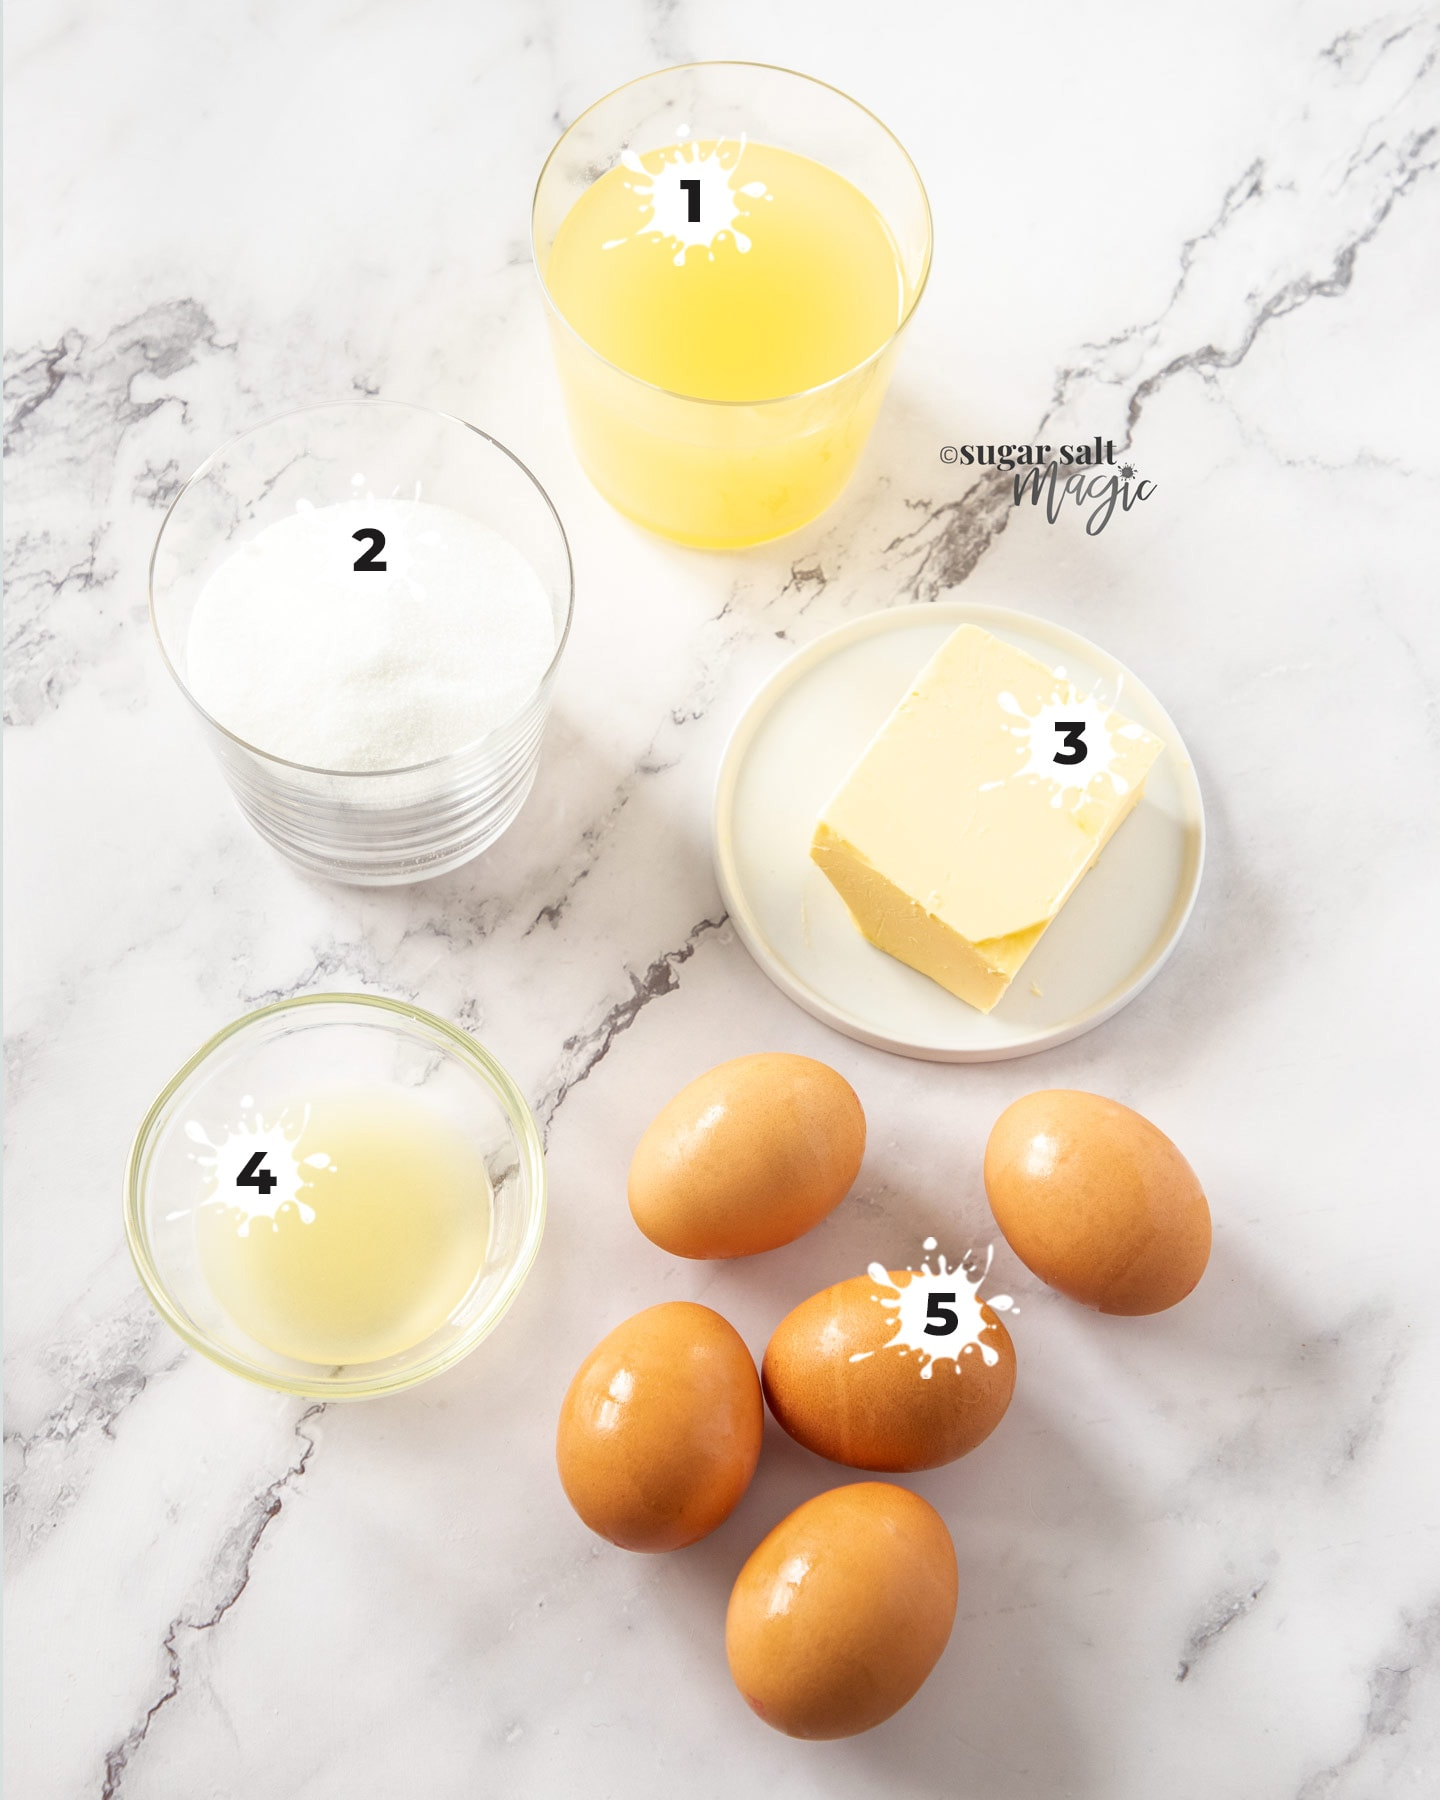 Ingredients for pineapple curd on a marble surface